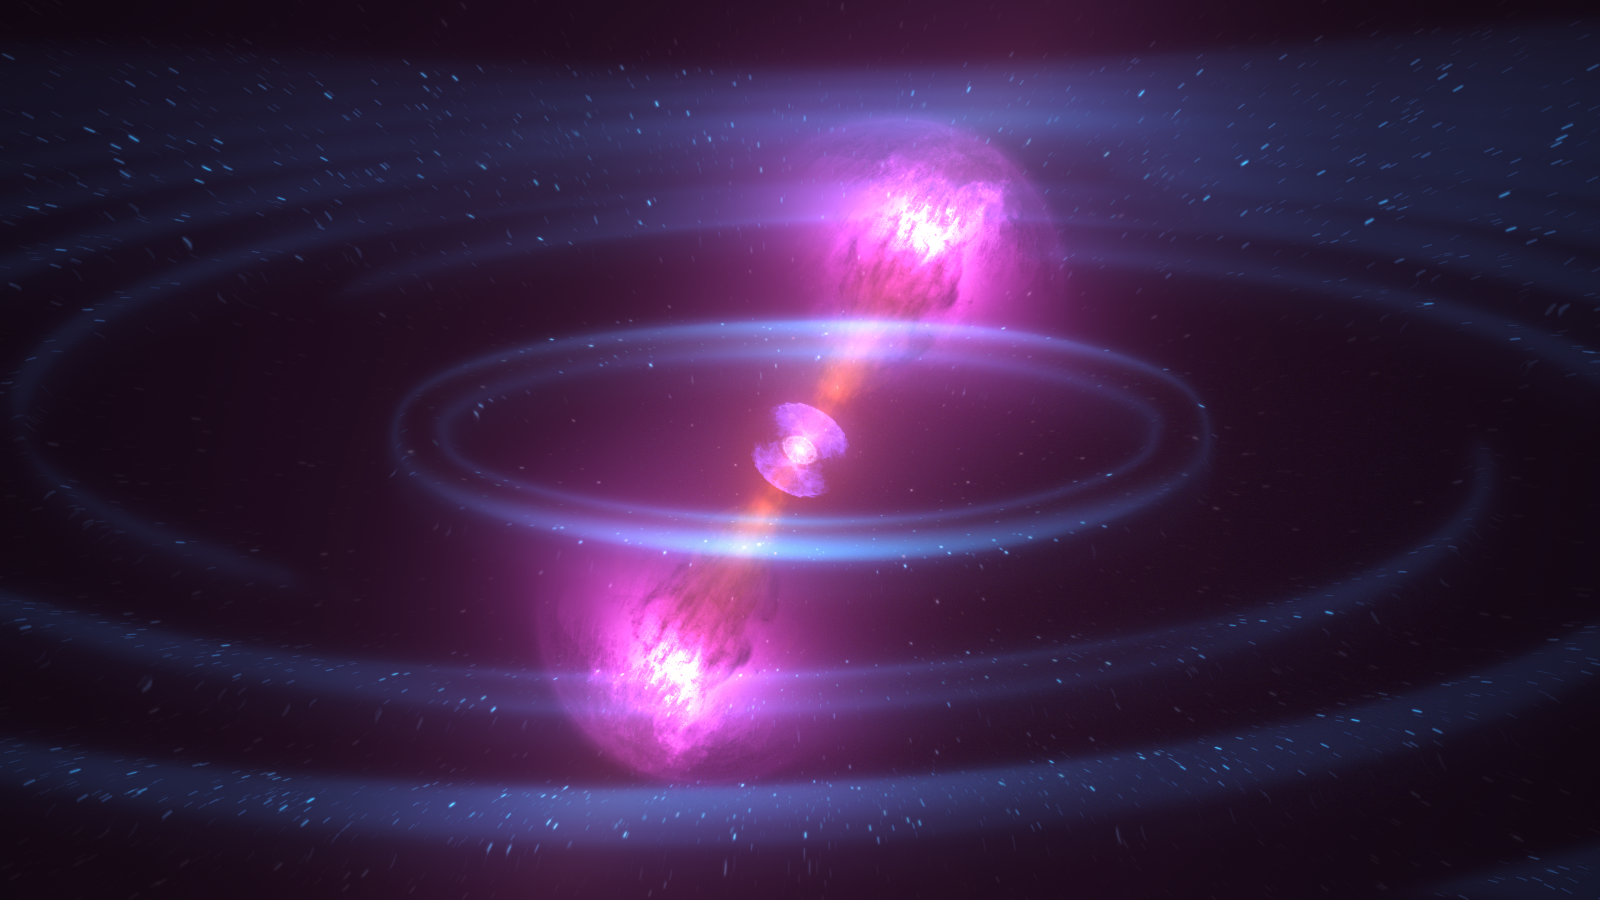 neutron star nasa - photo #7